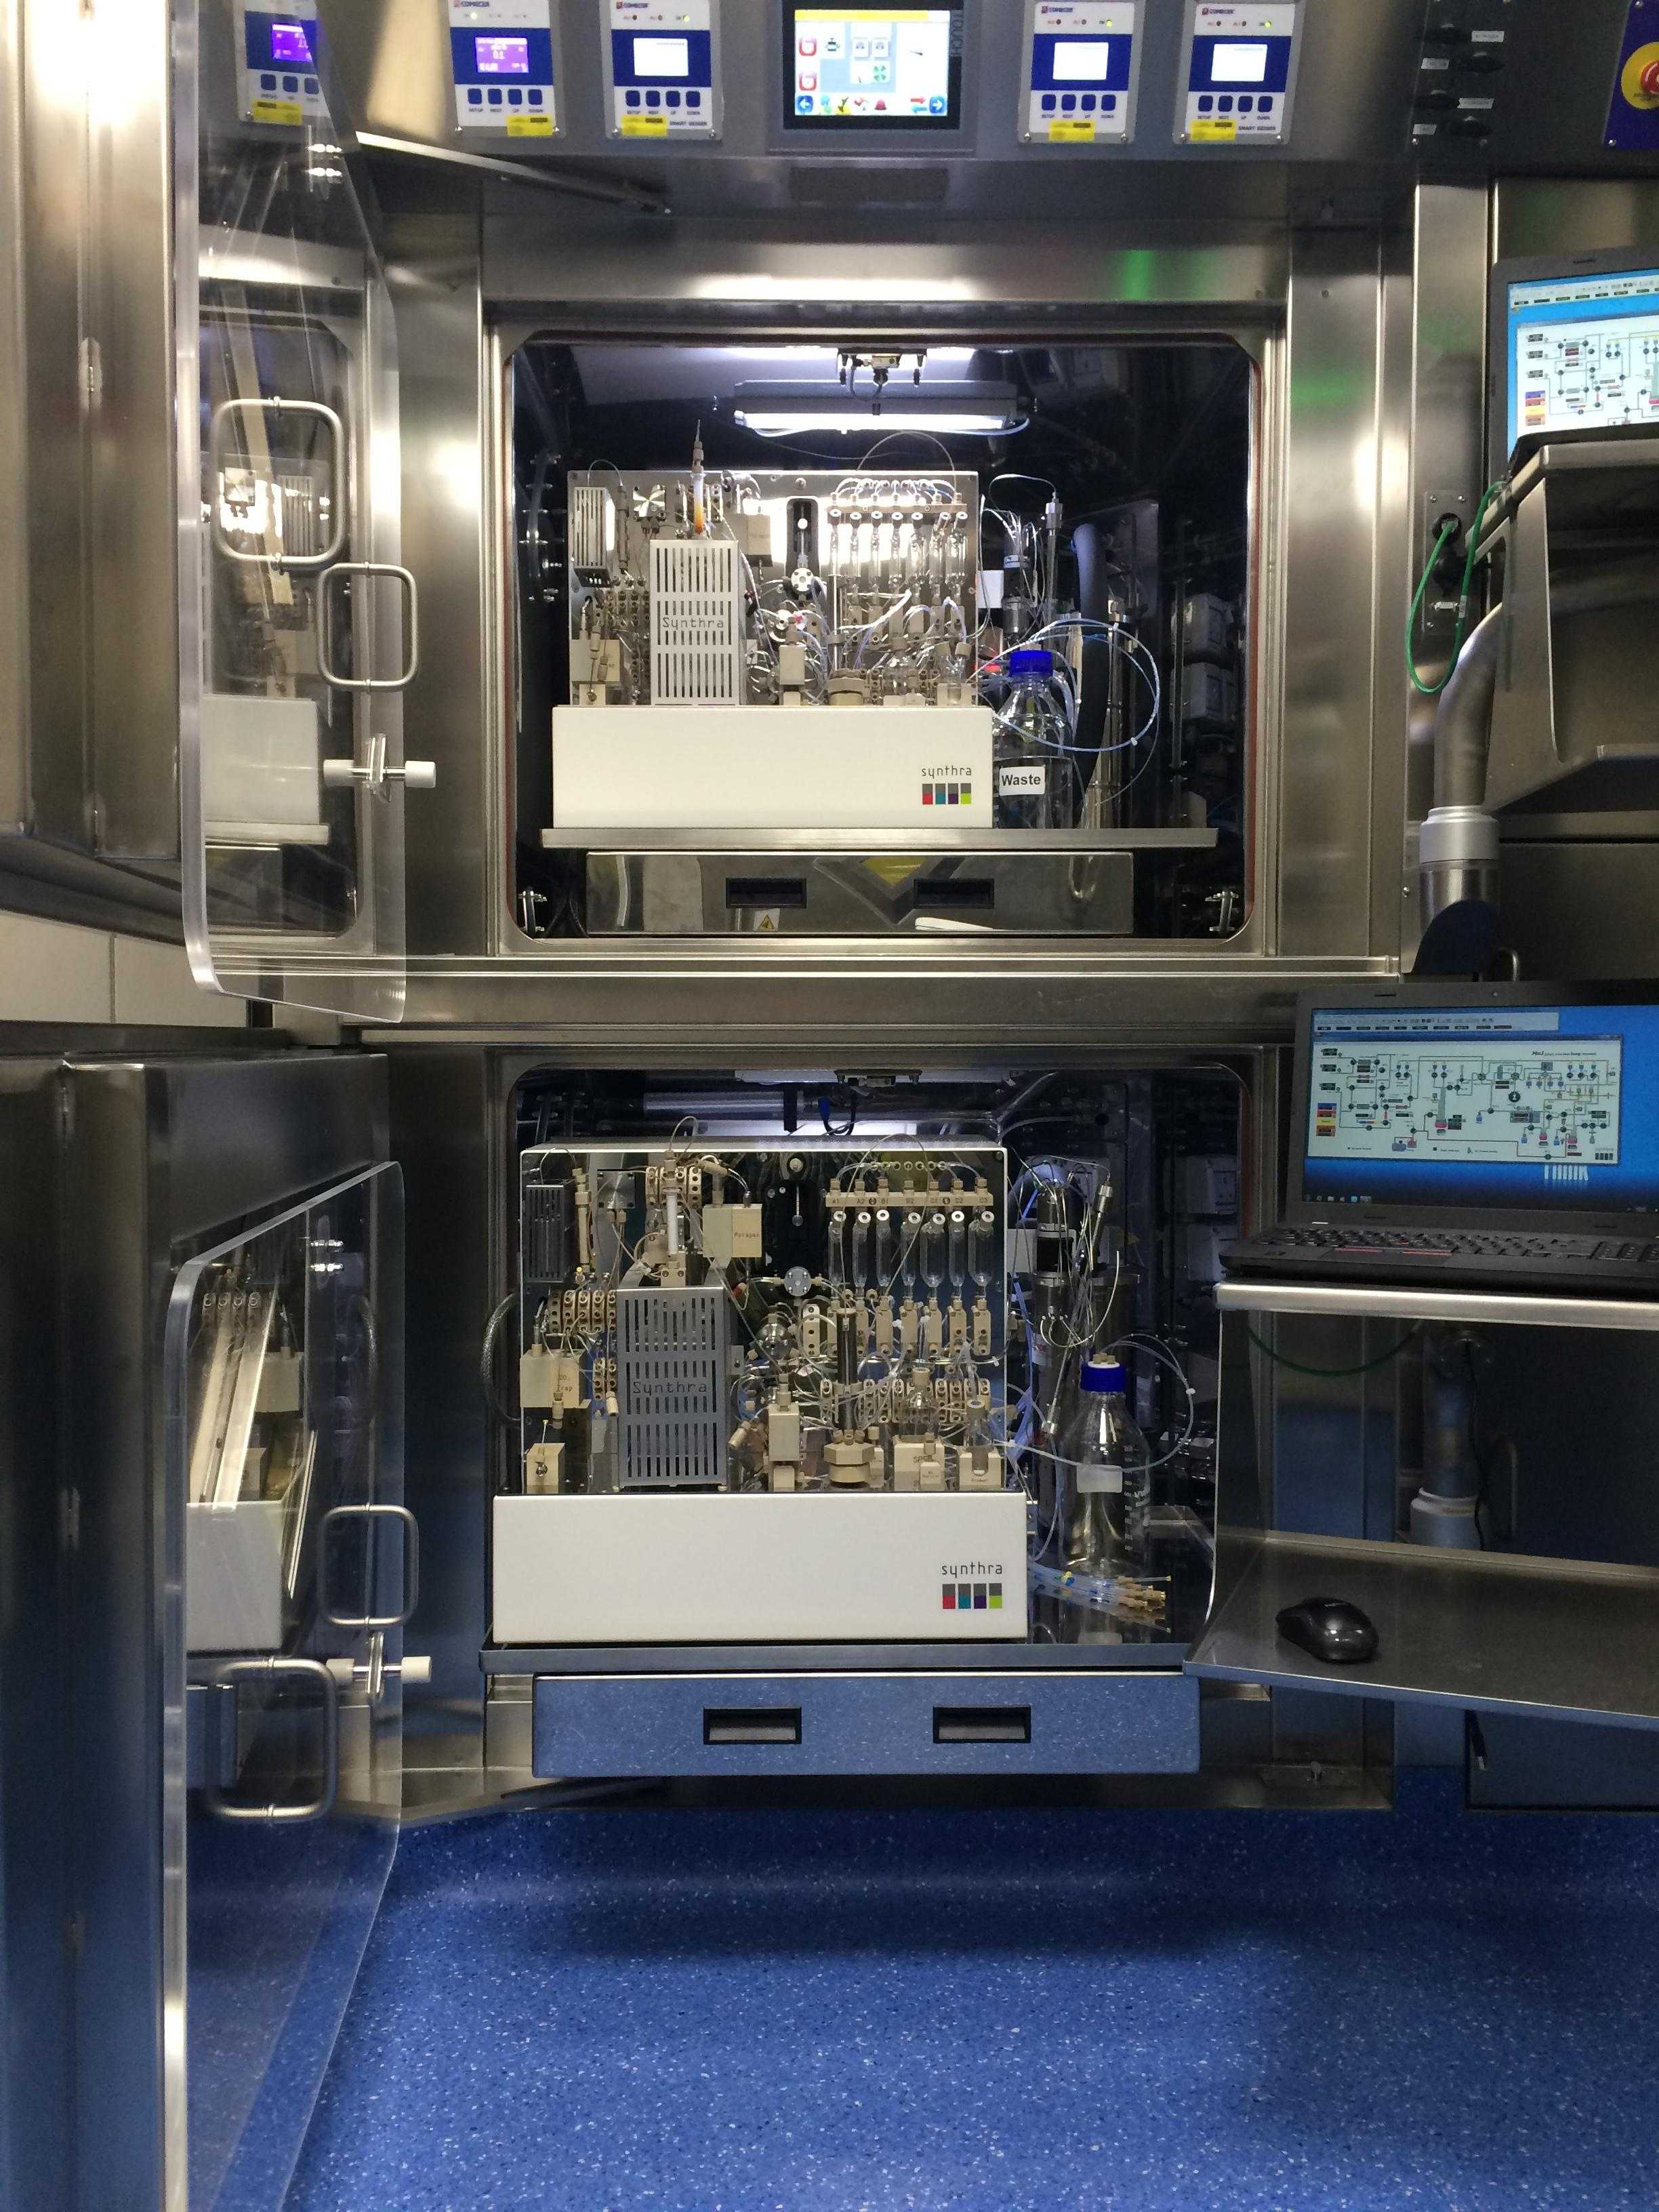 WBIC has installed the first three PET radiochemistry systems for the new GMP facility from Synthra GmbH.